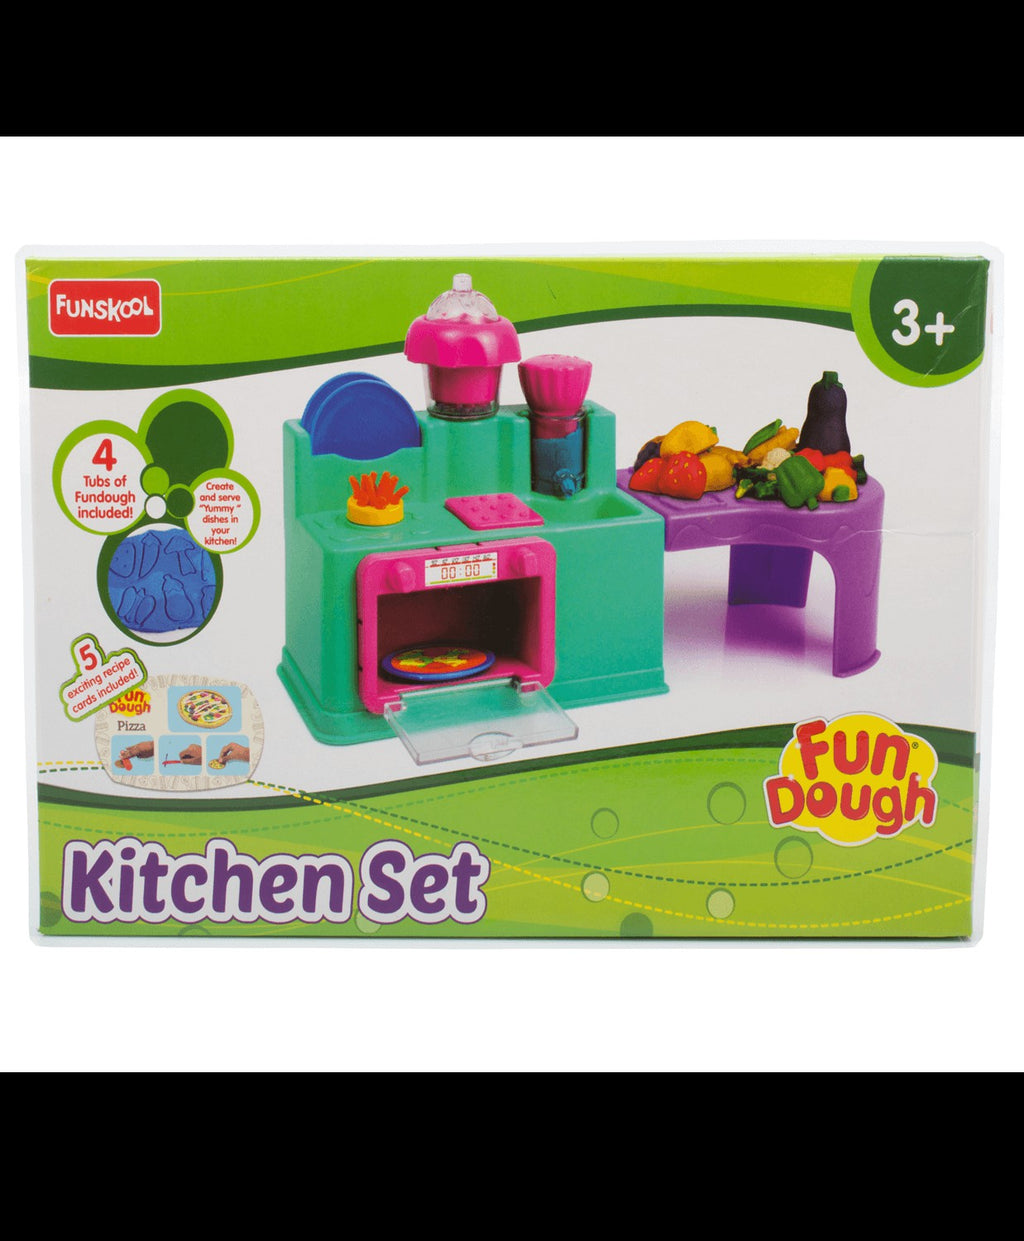 Funskool Fdoh Kitchen Set 2016